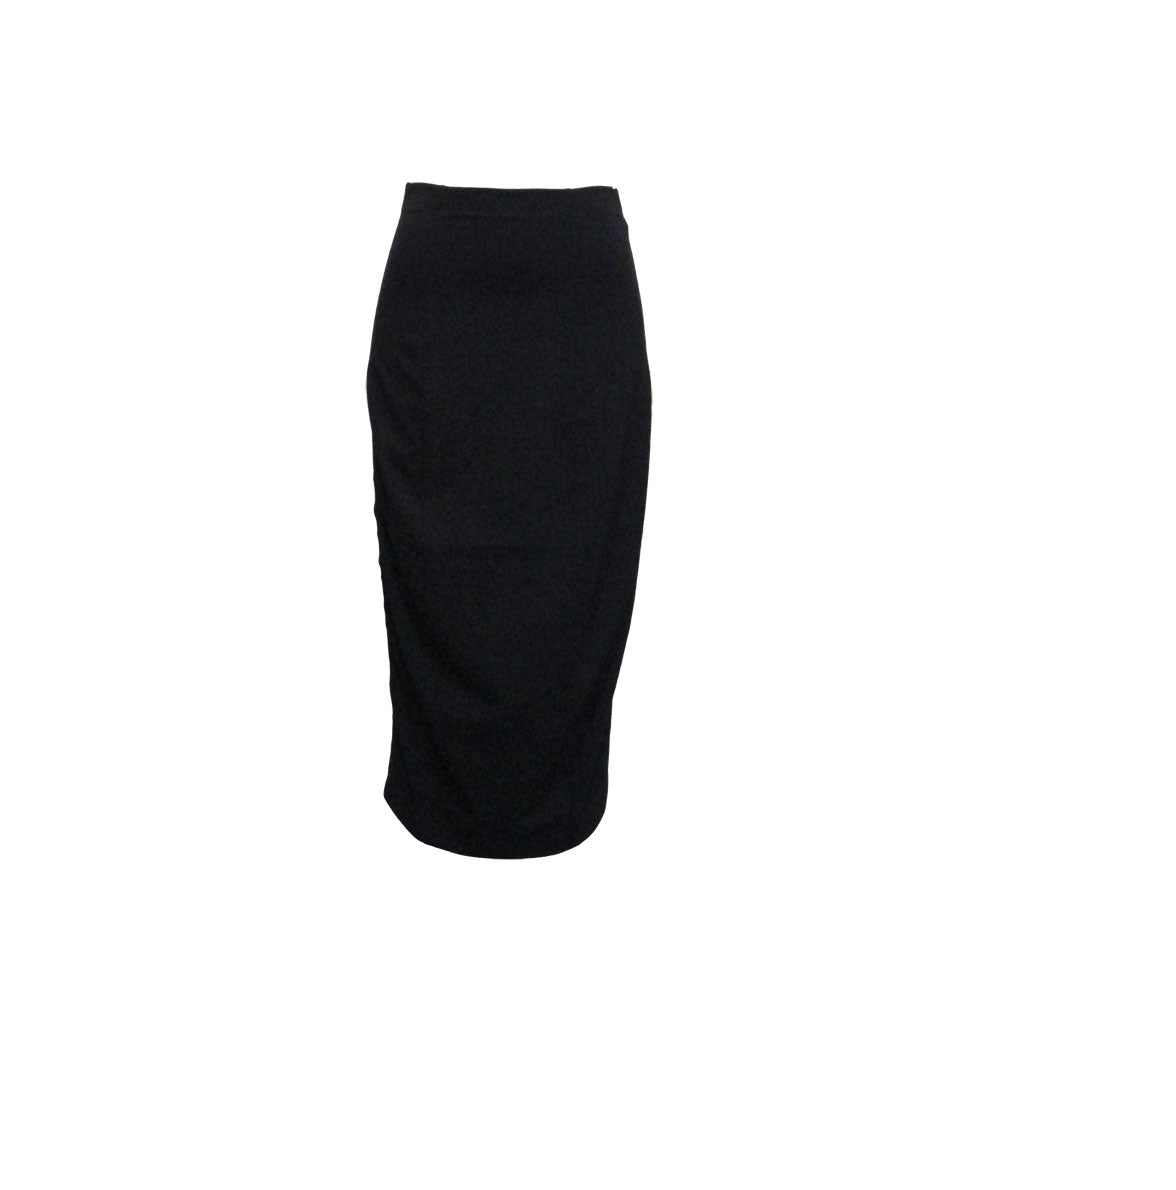 HEAVY JERSEY SKIRT - RUNDHOLZ BLACK LABEL